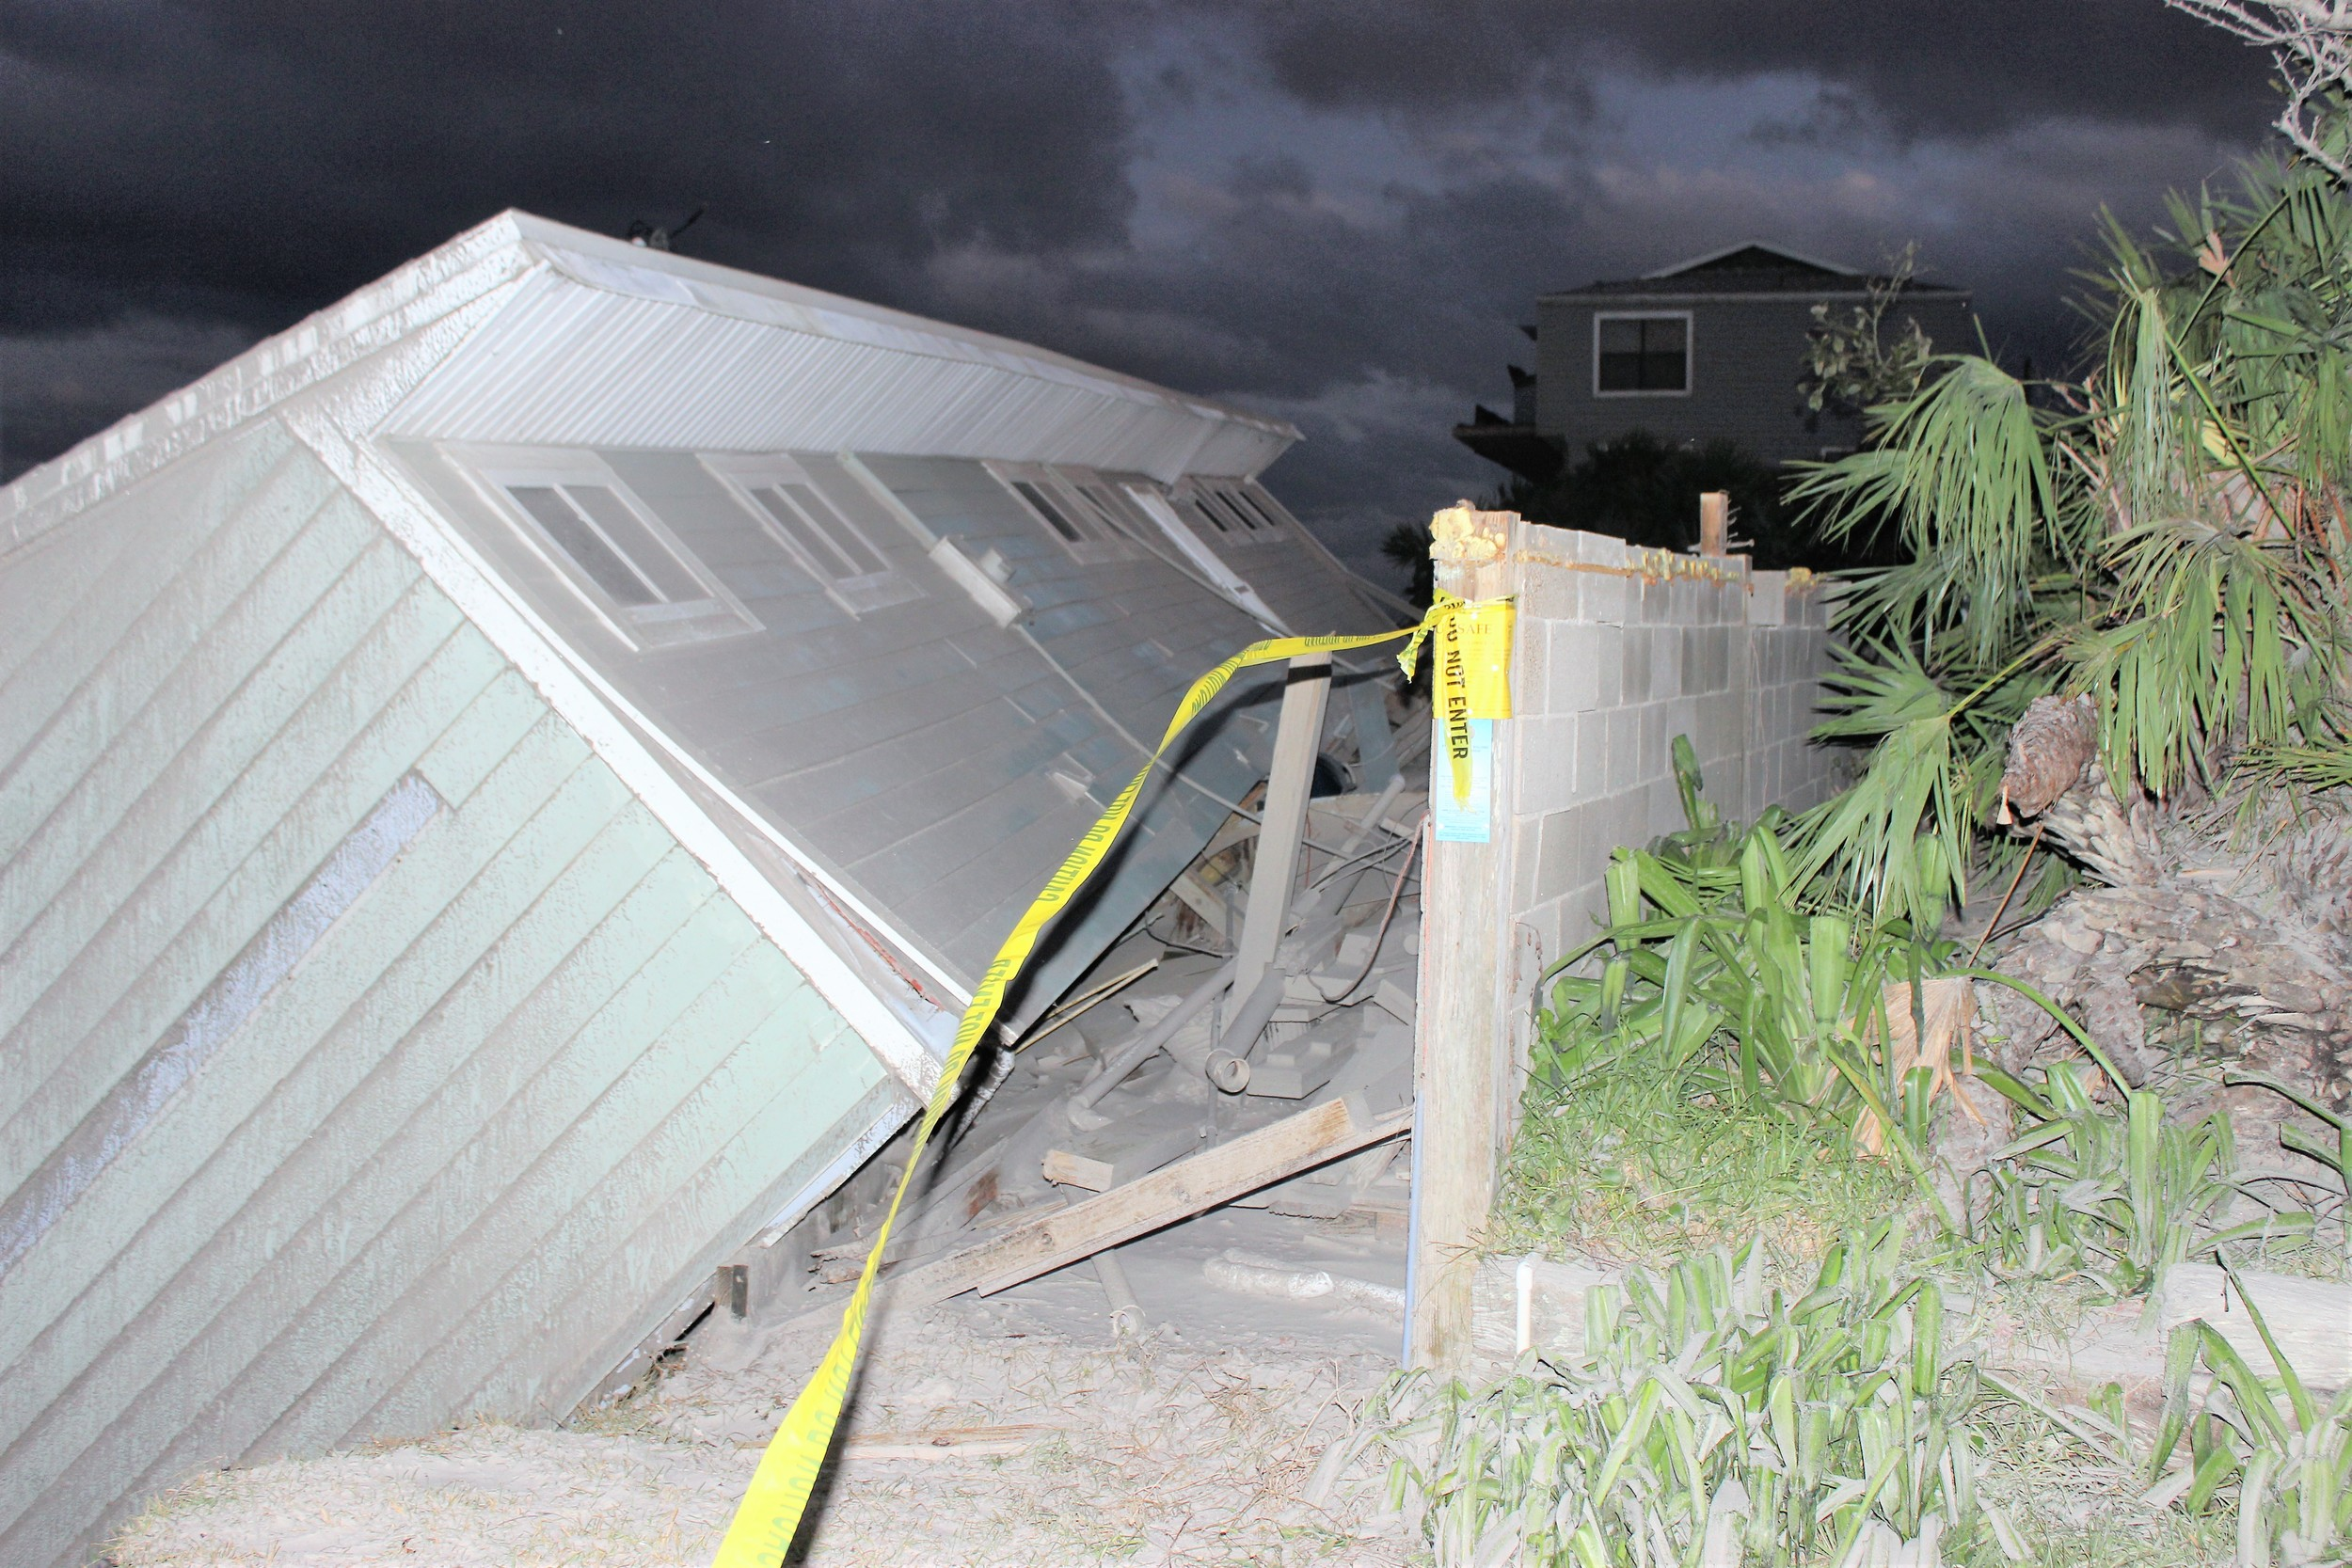 A home collapses in Vilano Beach due to erosion from Hurricane Irma.